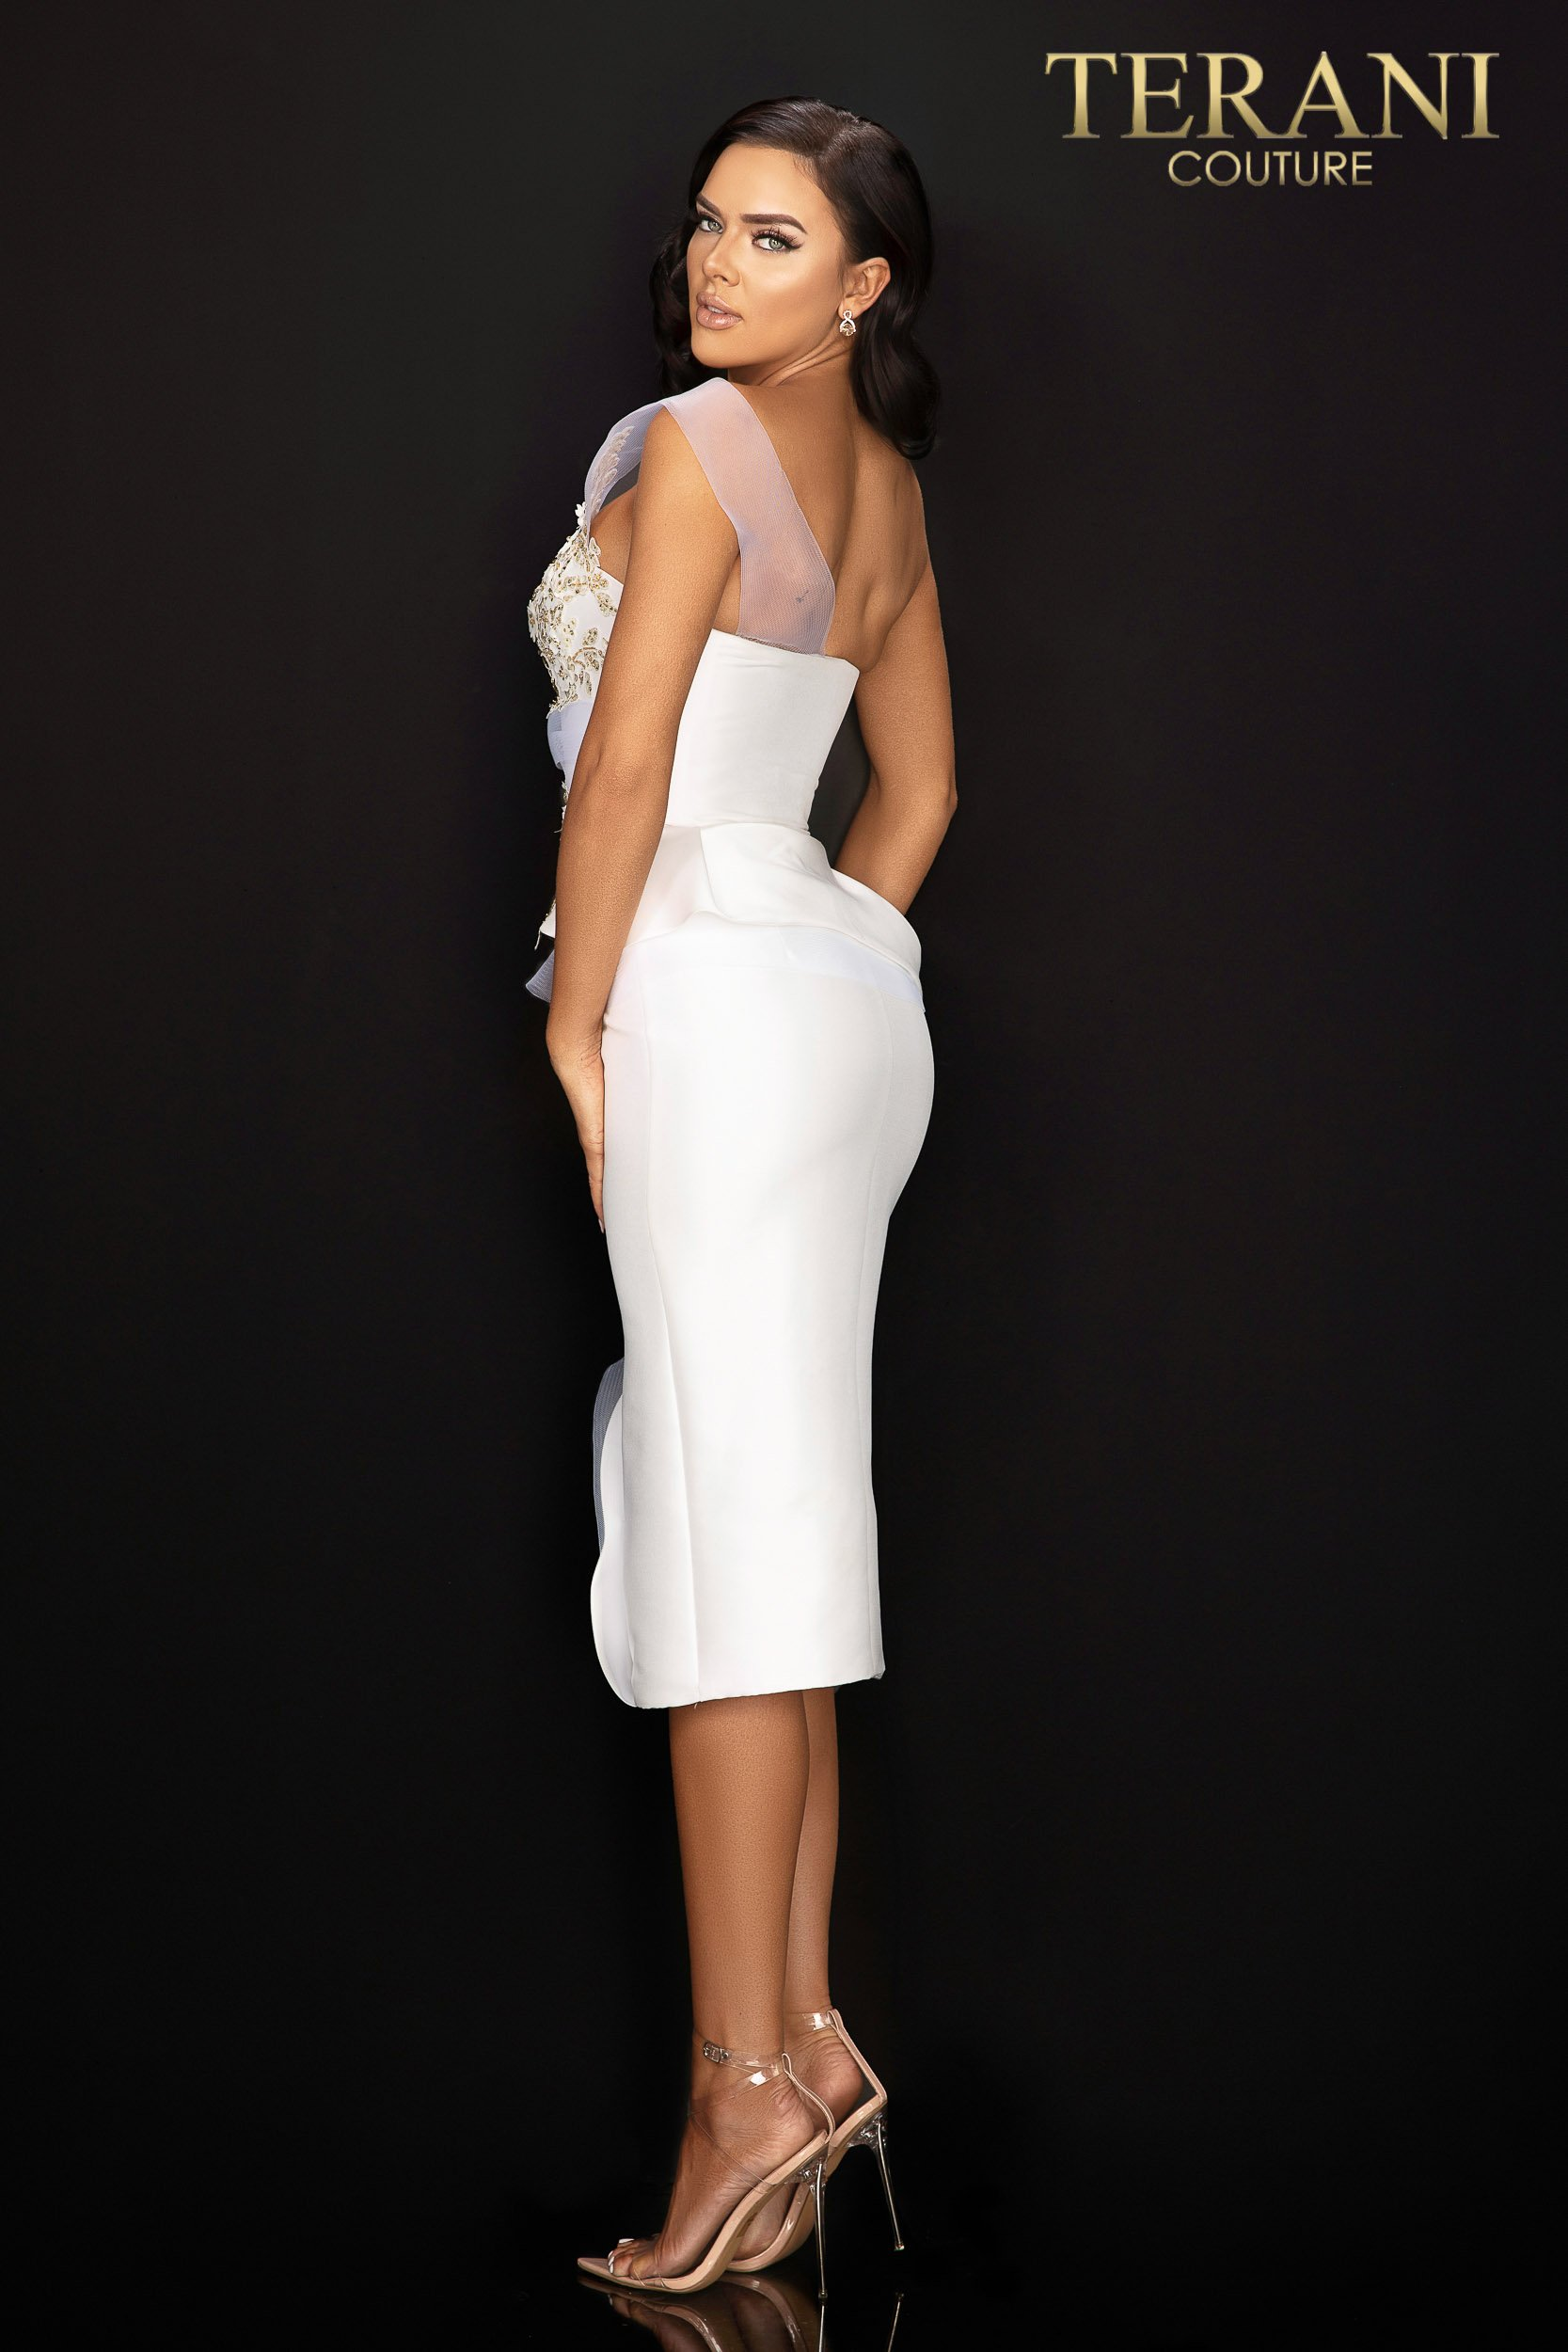 Style: One shoulder cocktail dress with peplum and center slit – 2011C2020